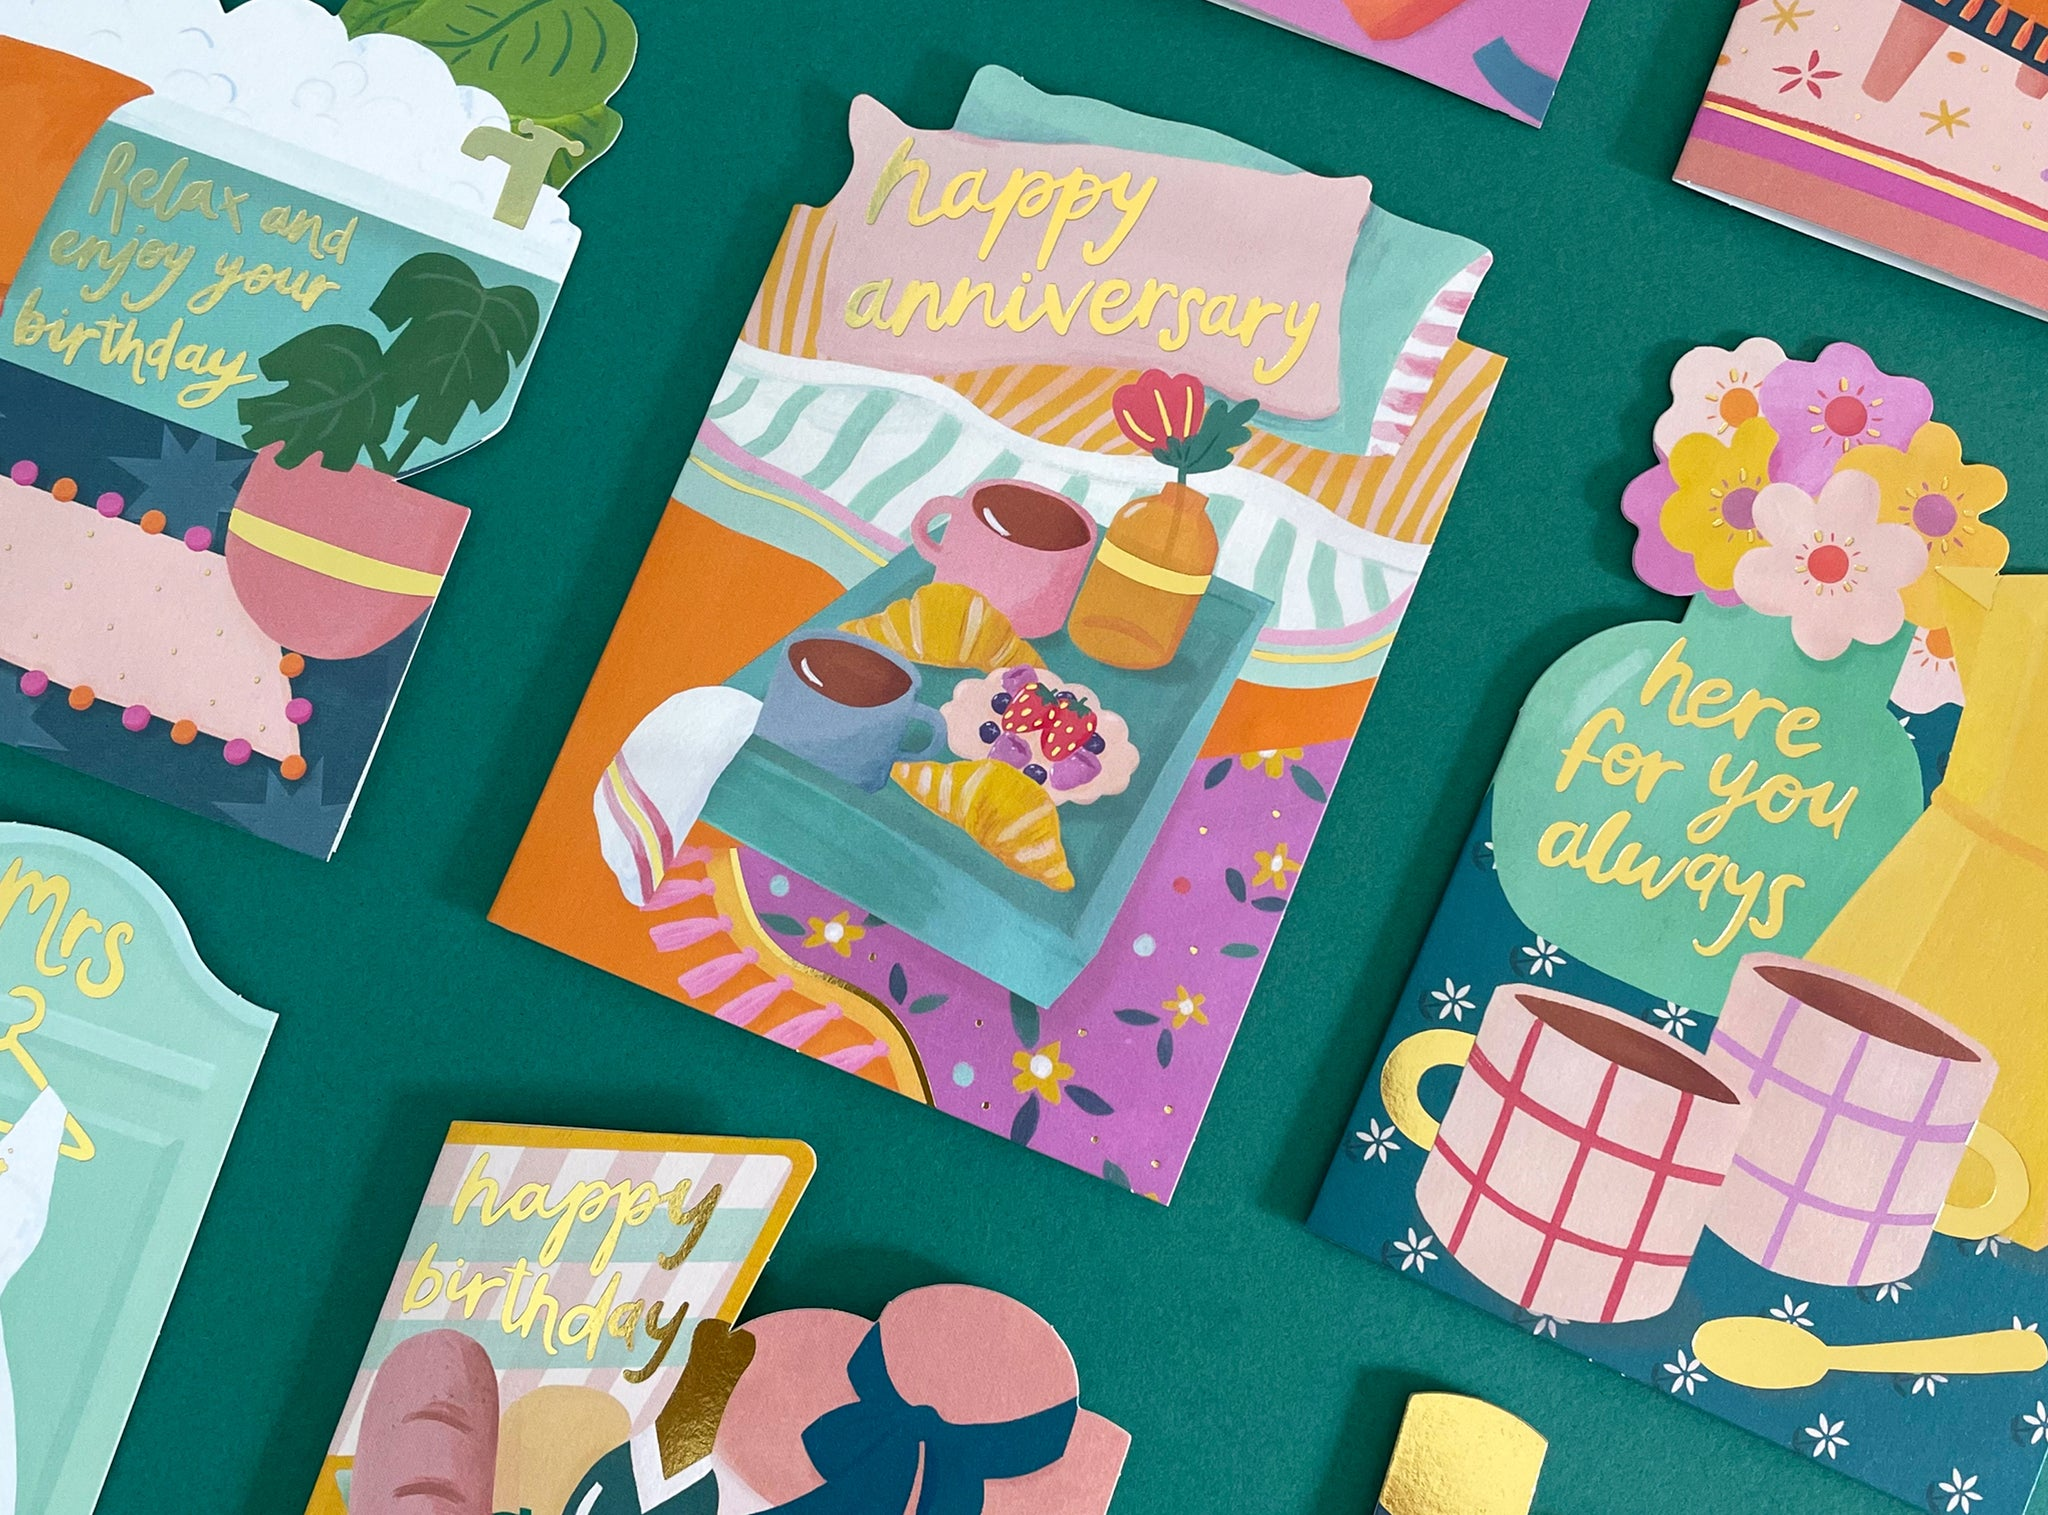 Golden Moments hand painted greeting card collection | Raspberry Blossom